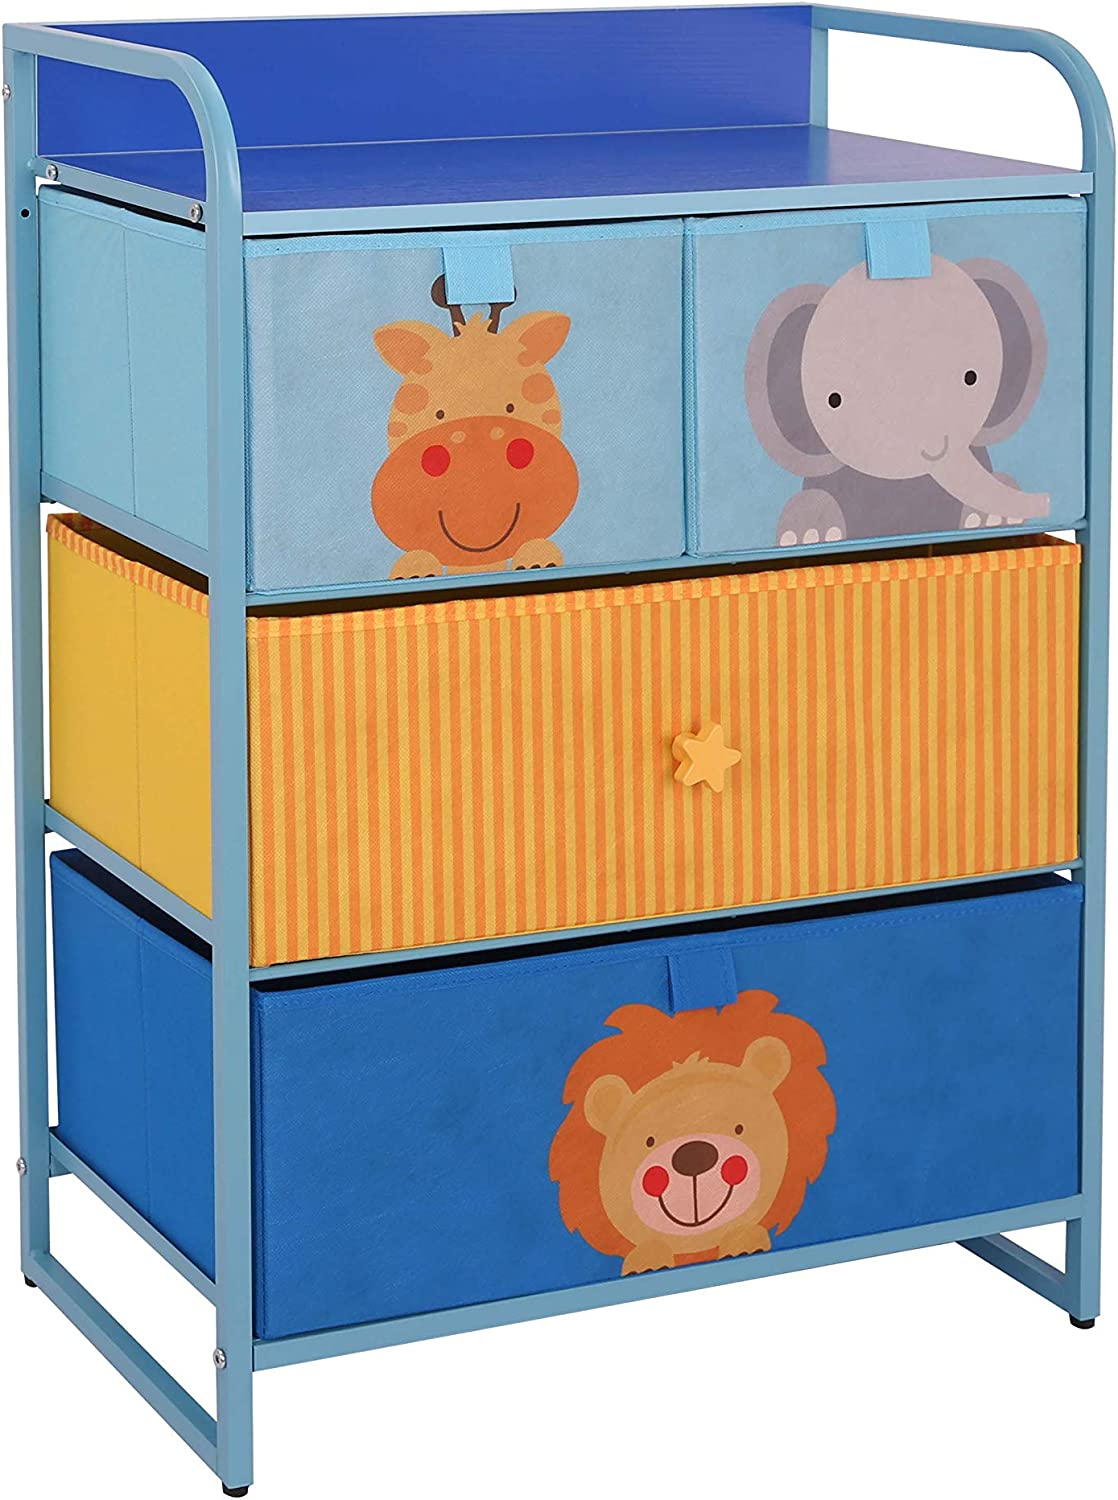 MY LUNA HOME Kids Dresser with 4 Drawers – Nursery Storage & Organizer Furniture for Children, Toddler, Baby– Heavy Duty, Soft & Easy Pull Fabric Bins for Toys, Clothes, Playroom & Bedroom - Blue